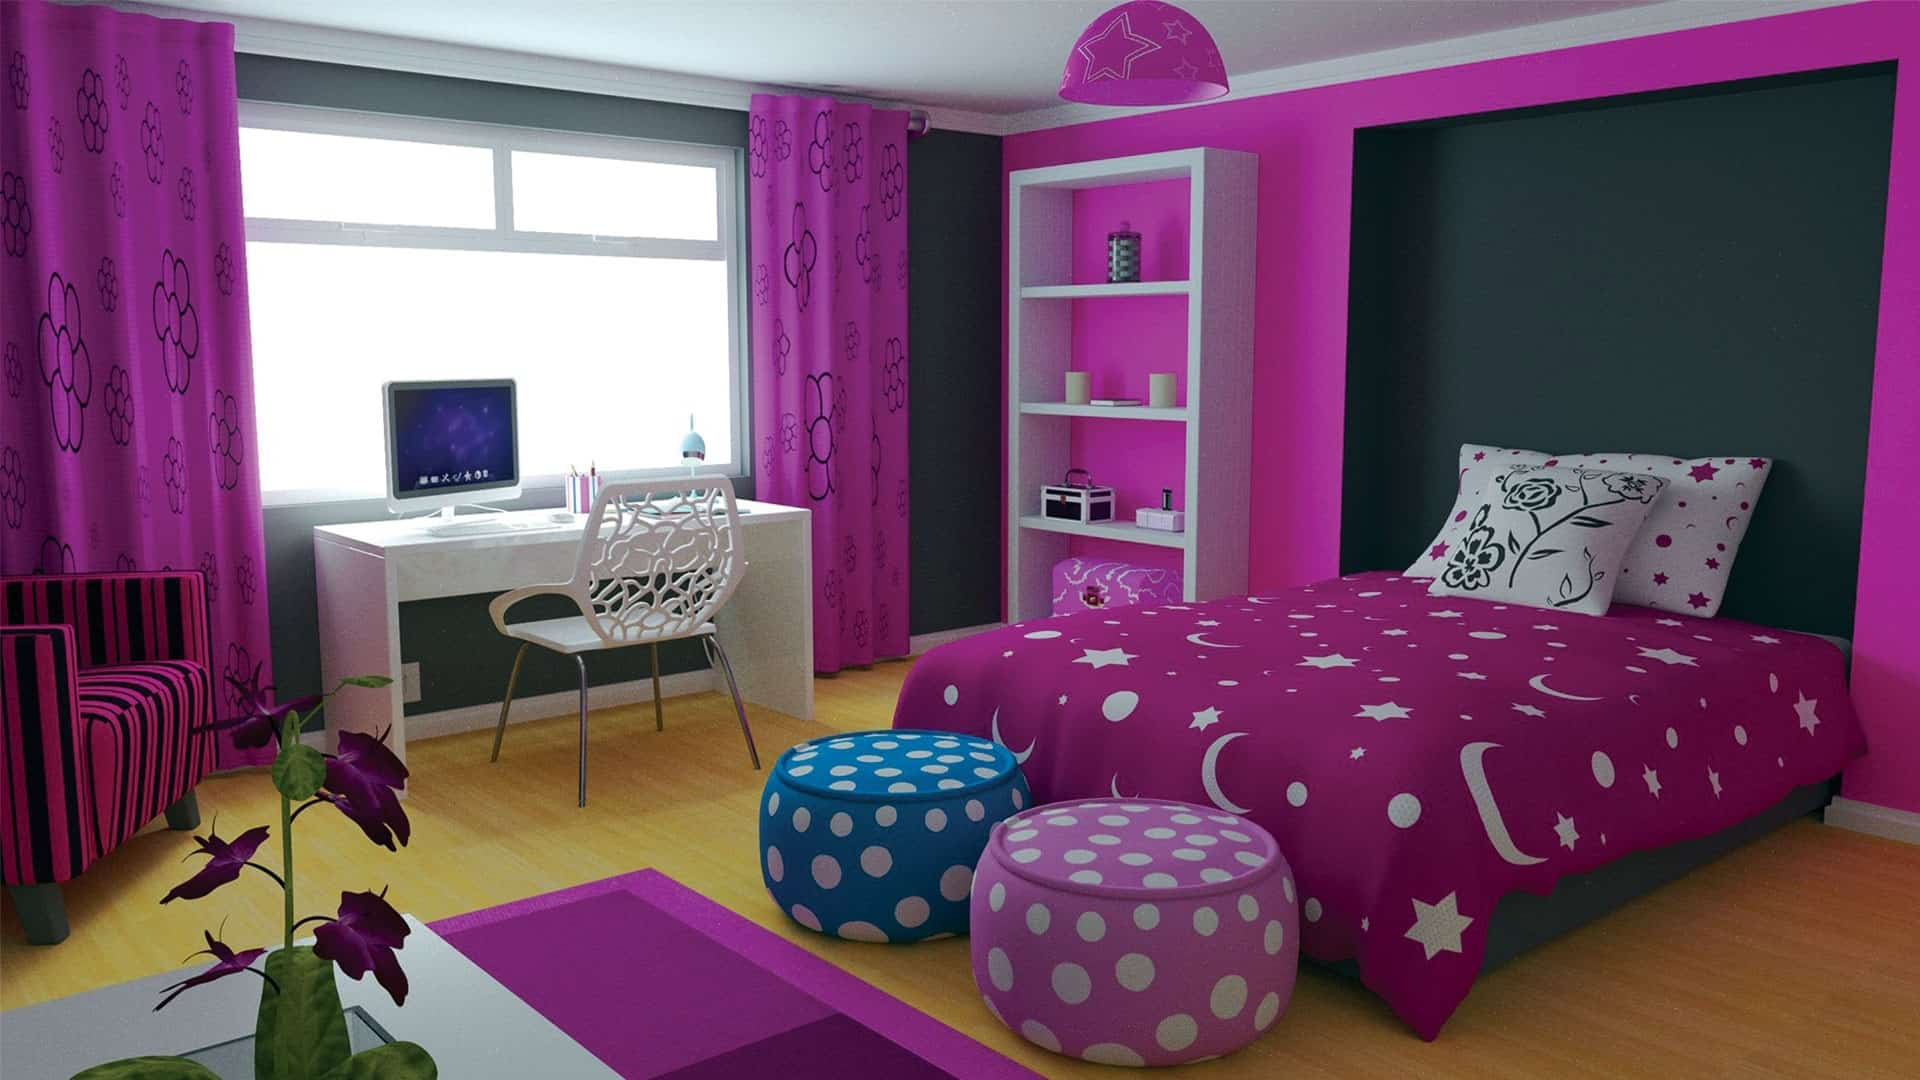 Home decor trends 2017 purple teen room house interior - Interior designs for simple bedroom of teenegers ...